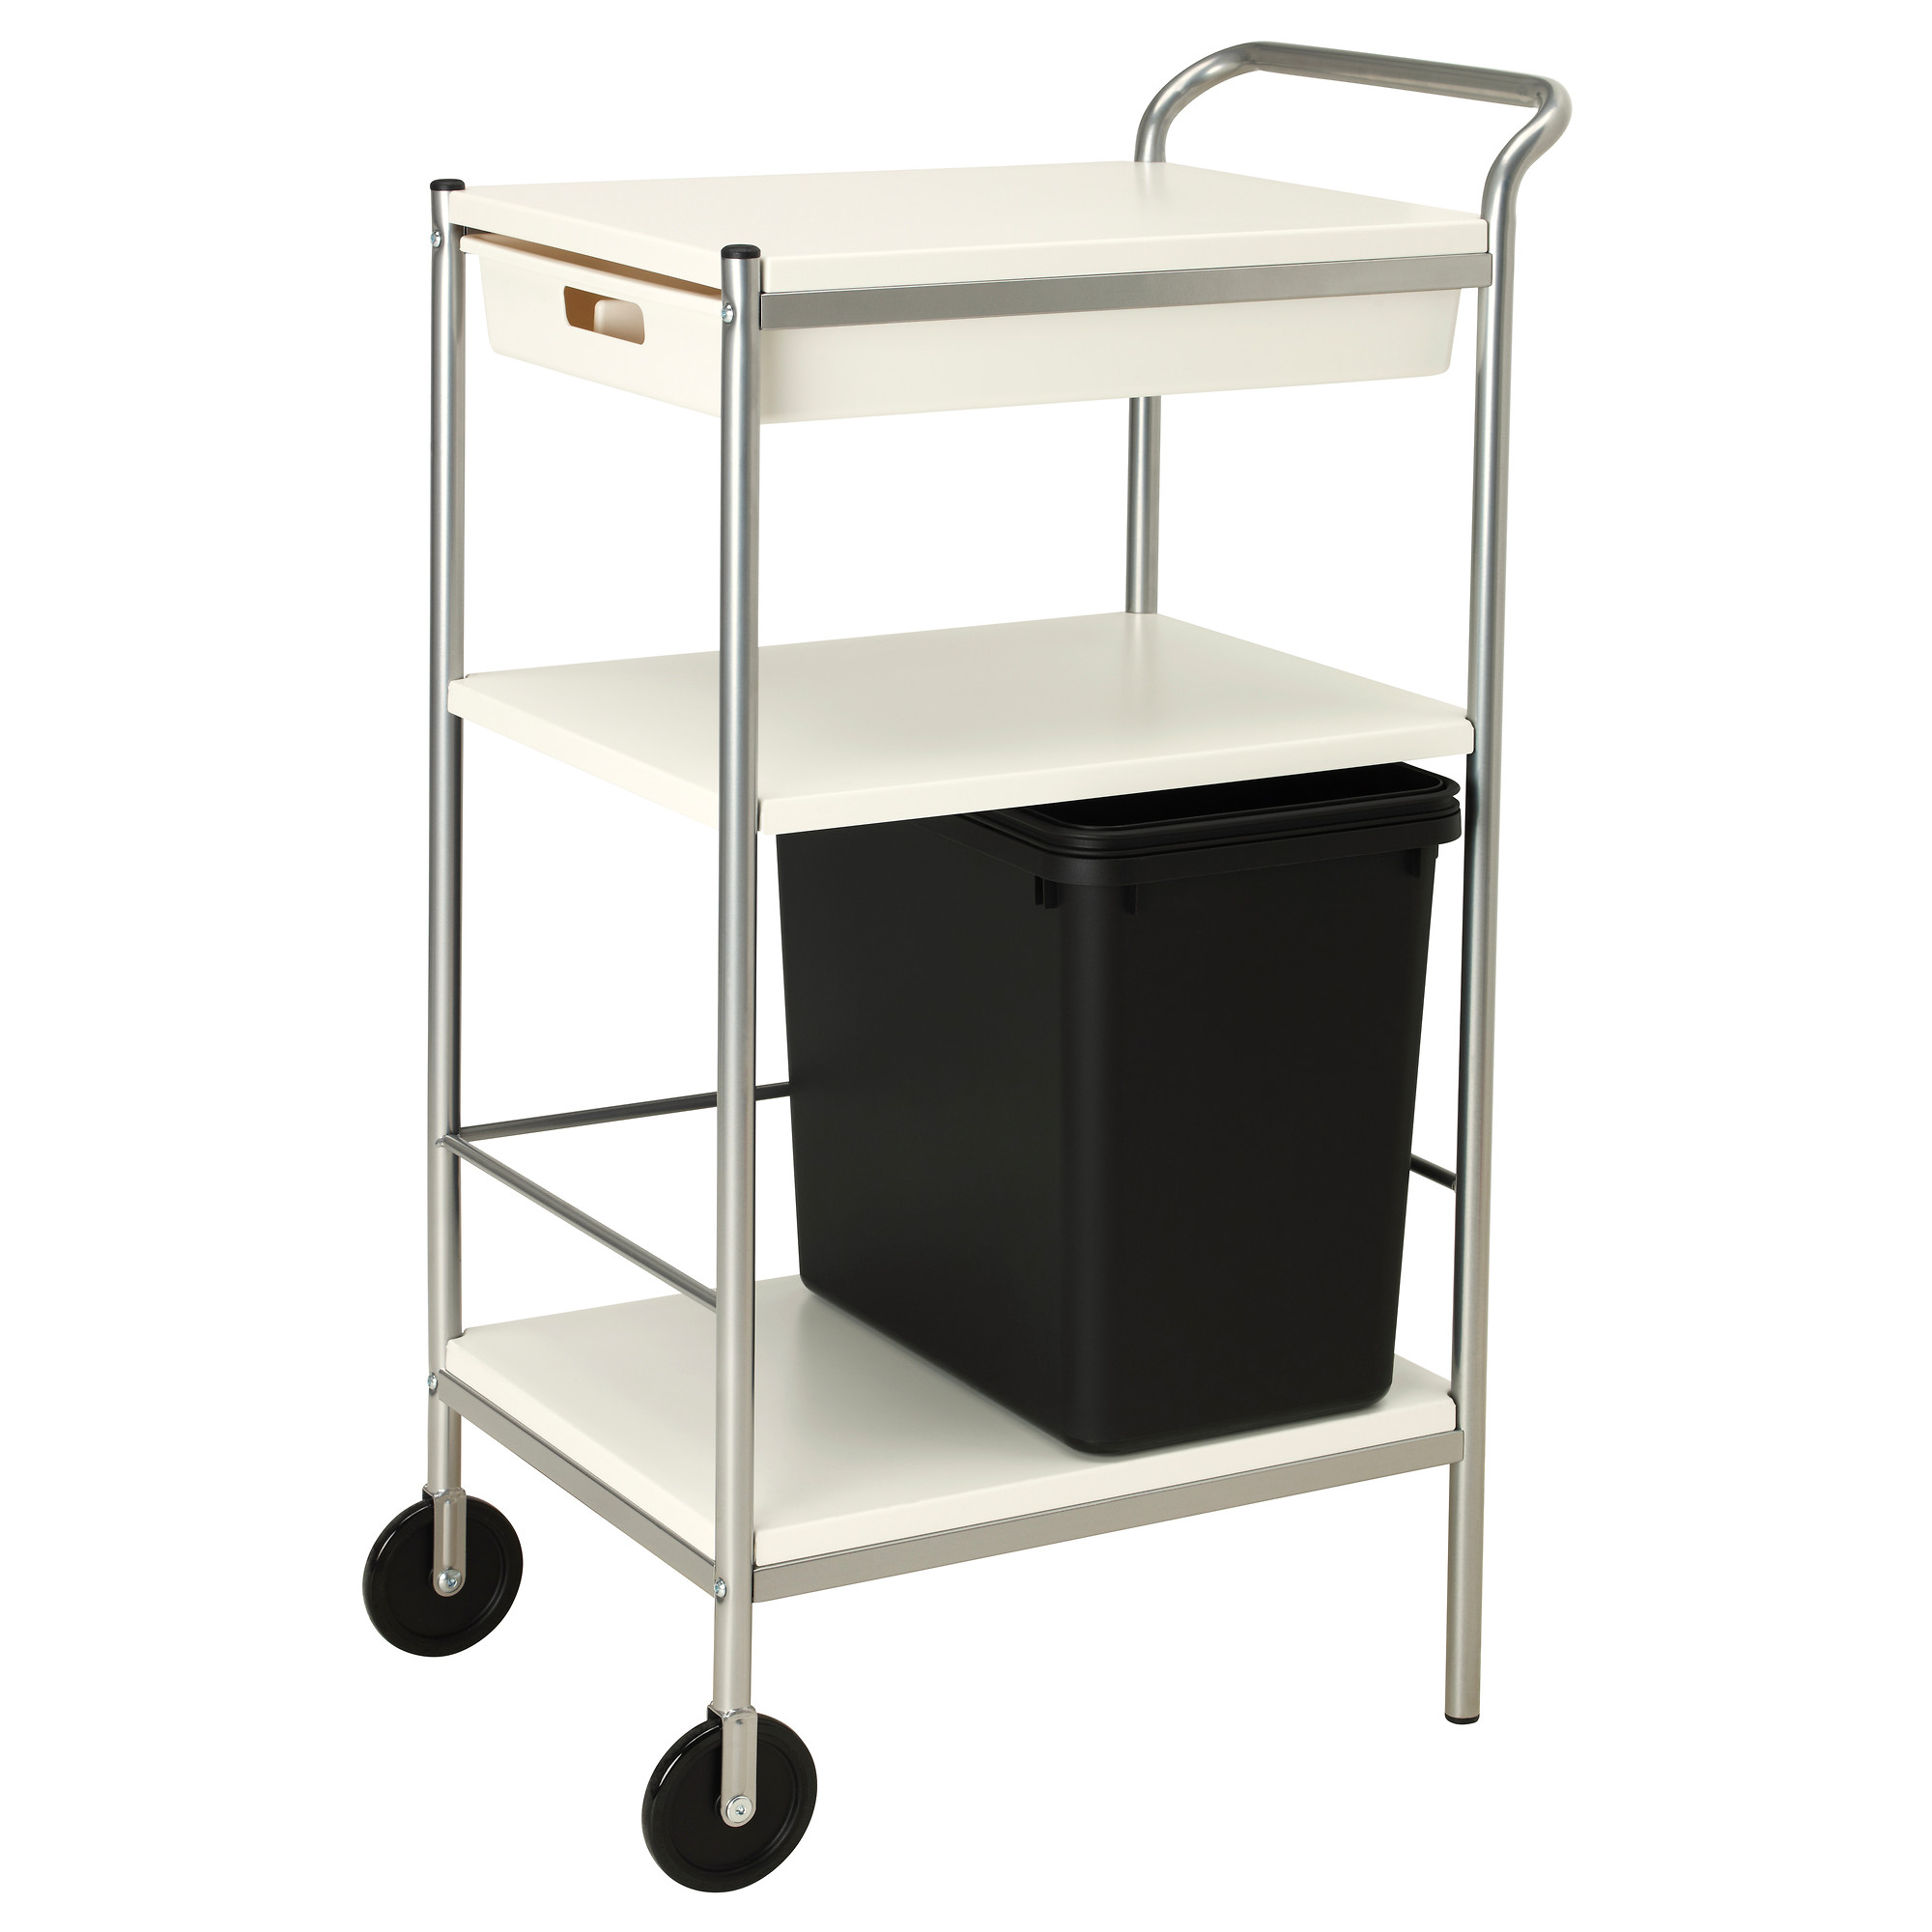 Kitchen utility cart ikea r skog utility cart ikea to use for Microwave carts ikea